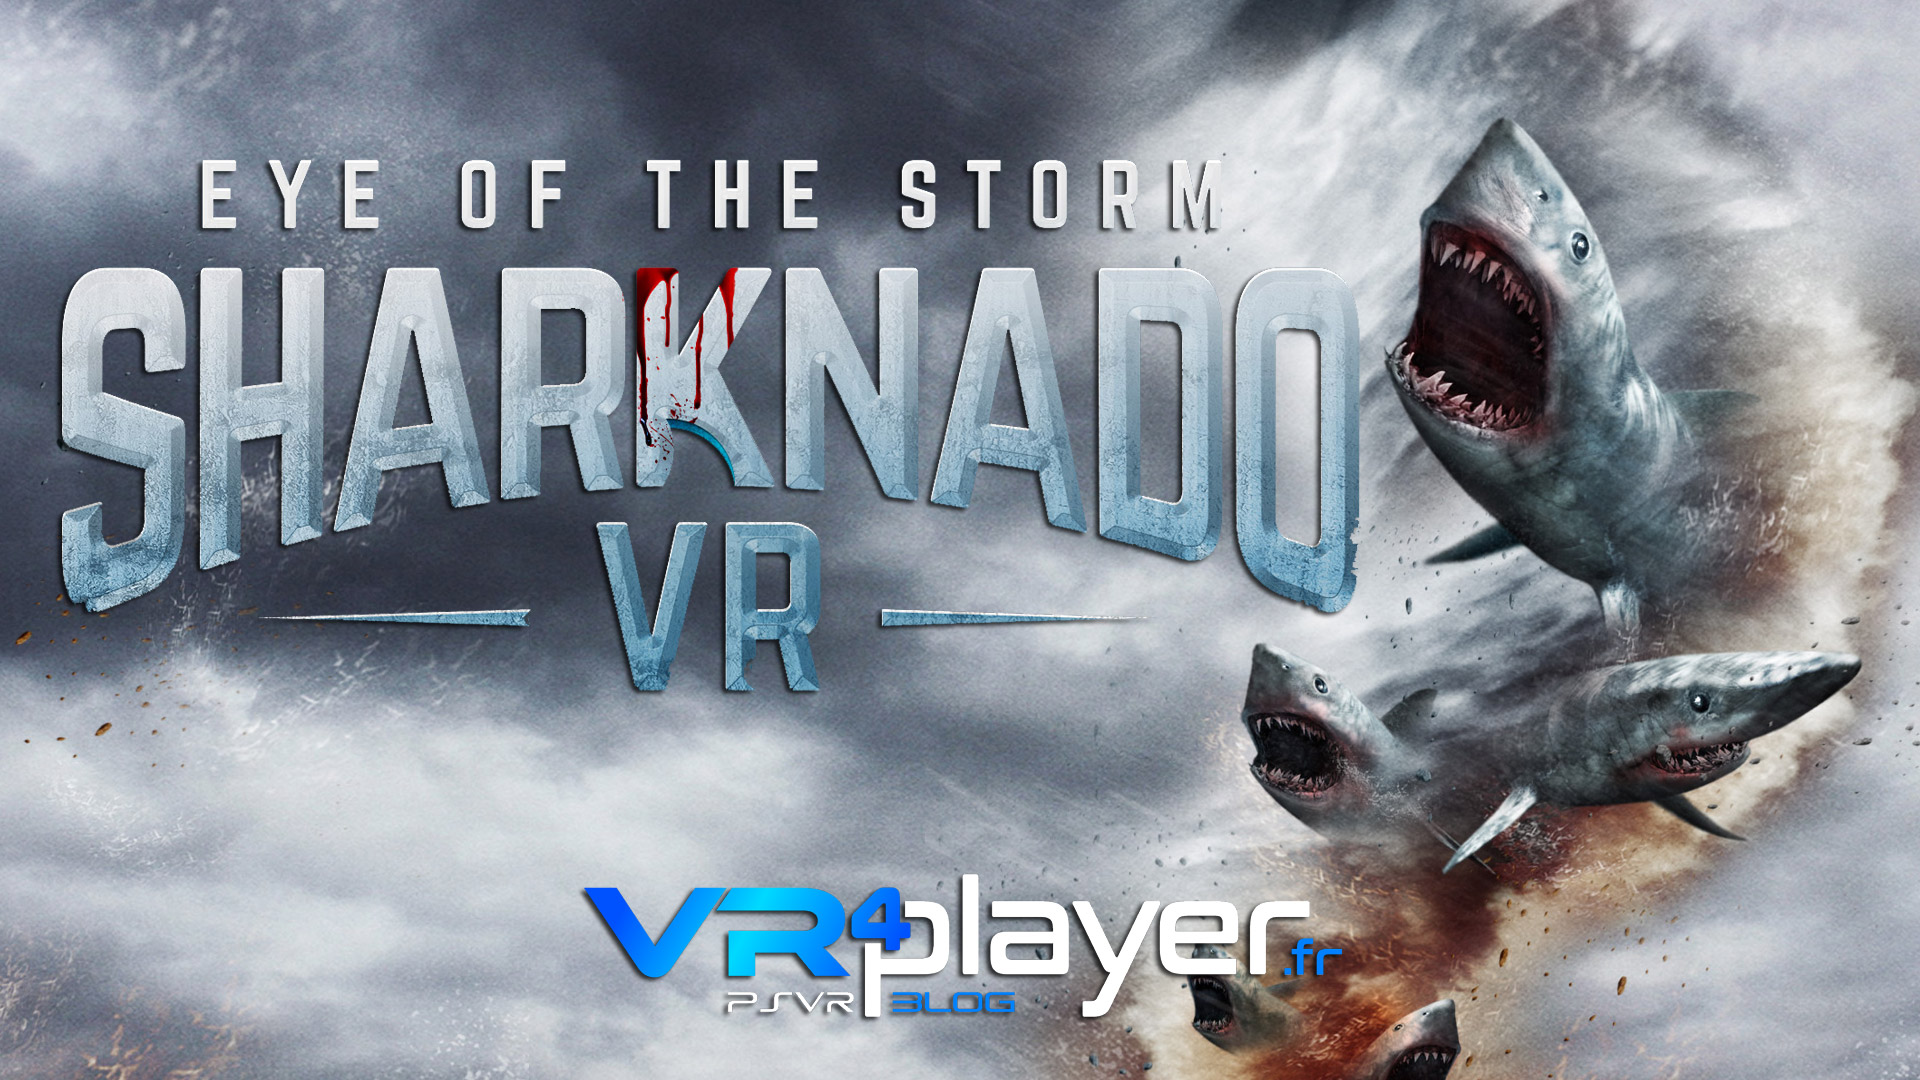 Sharknado VR Eye of the Storm propulsé sur PSVR vr4player.fr